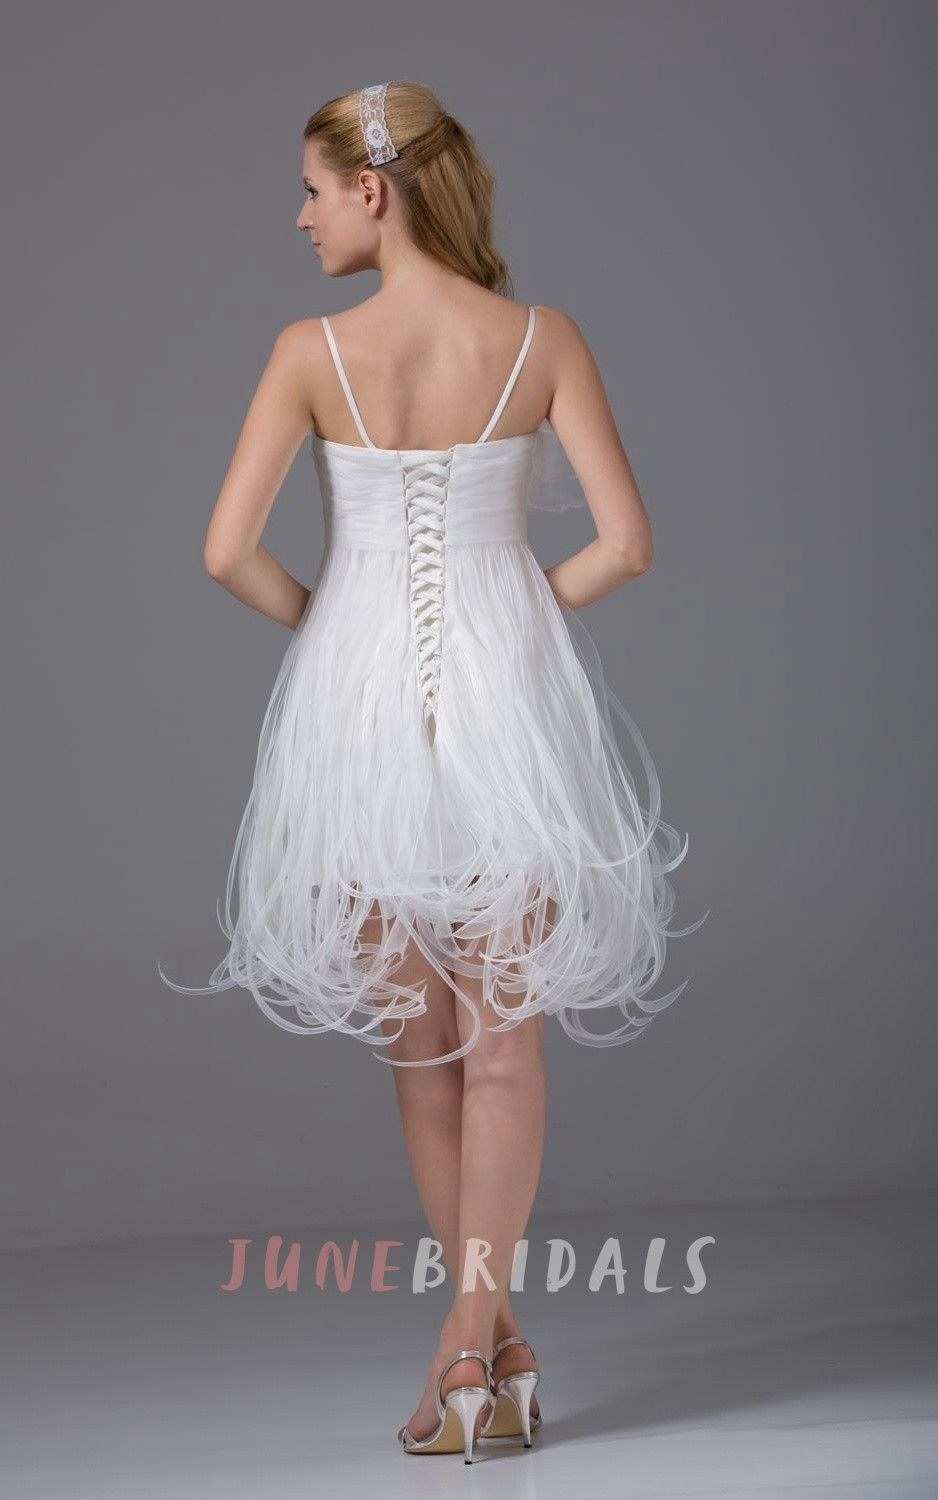 Lovely spaghettistrap kneelength dress with thread design knee